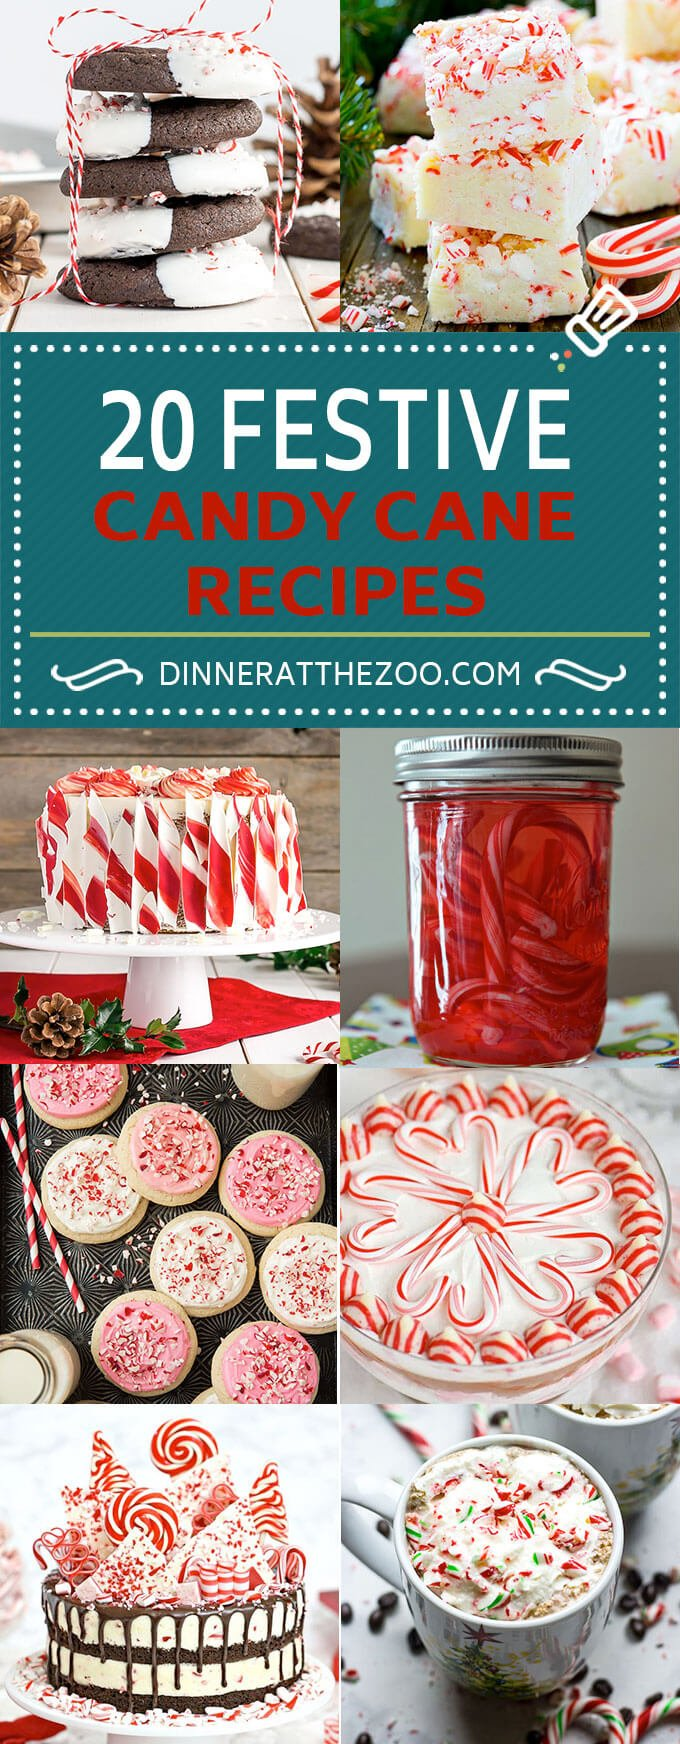 20 Festive Candy Cane Recipes | Christmas Recipes | Holiday Recipes | Peppermint Recipes